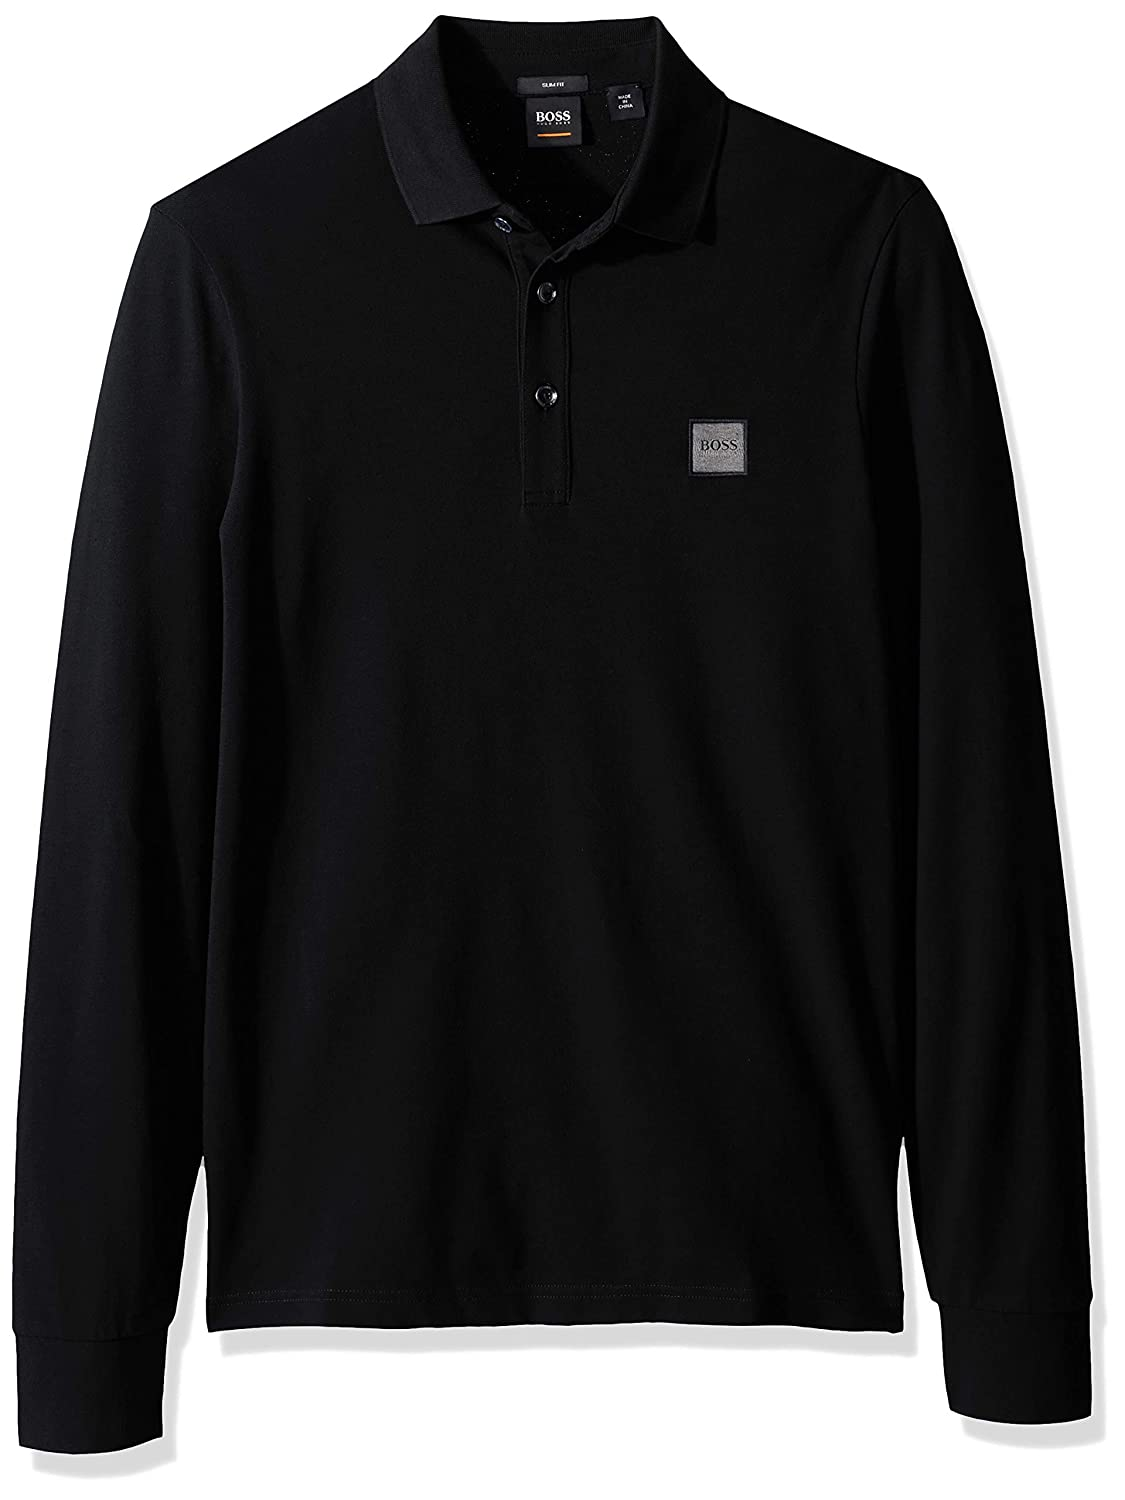 Hugo Boss Mens Passerby Long Sleeve Polo with Chest Logo Patch